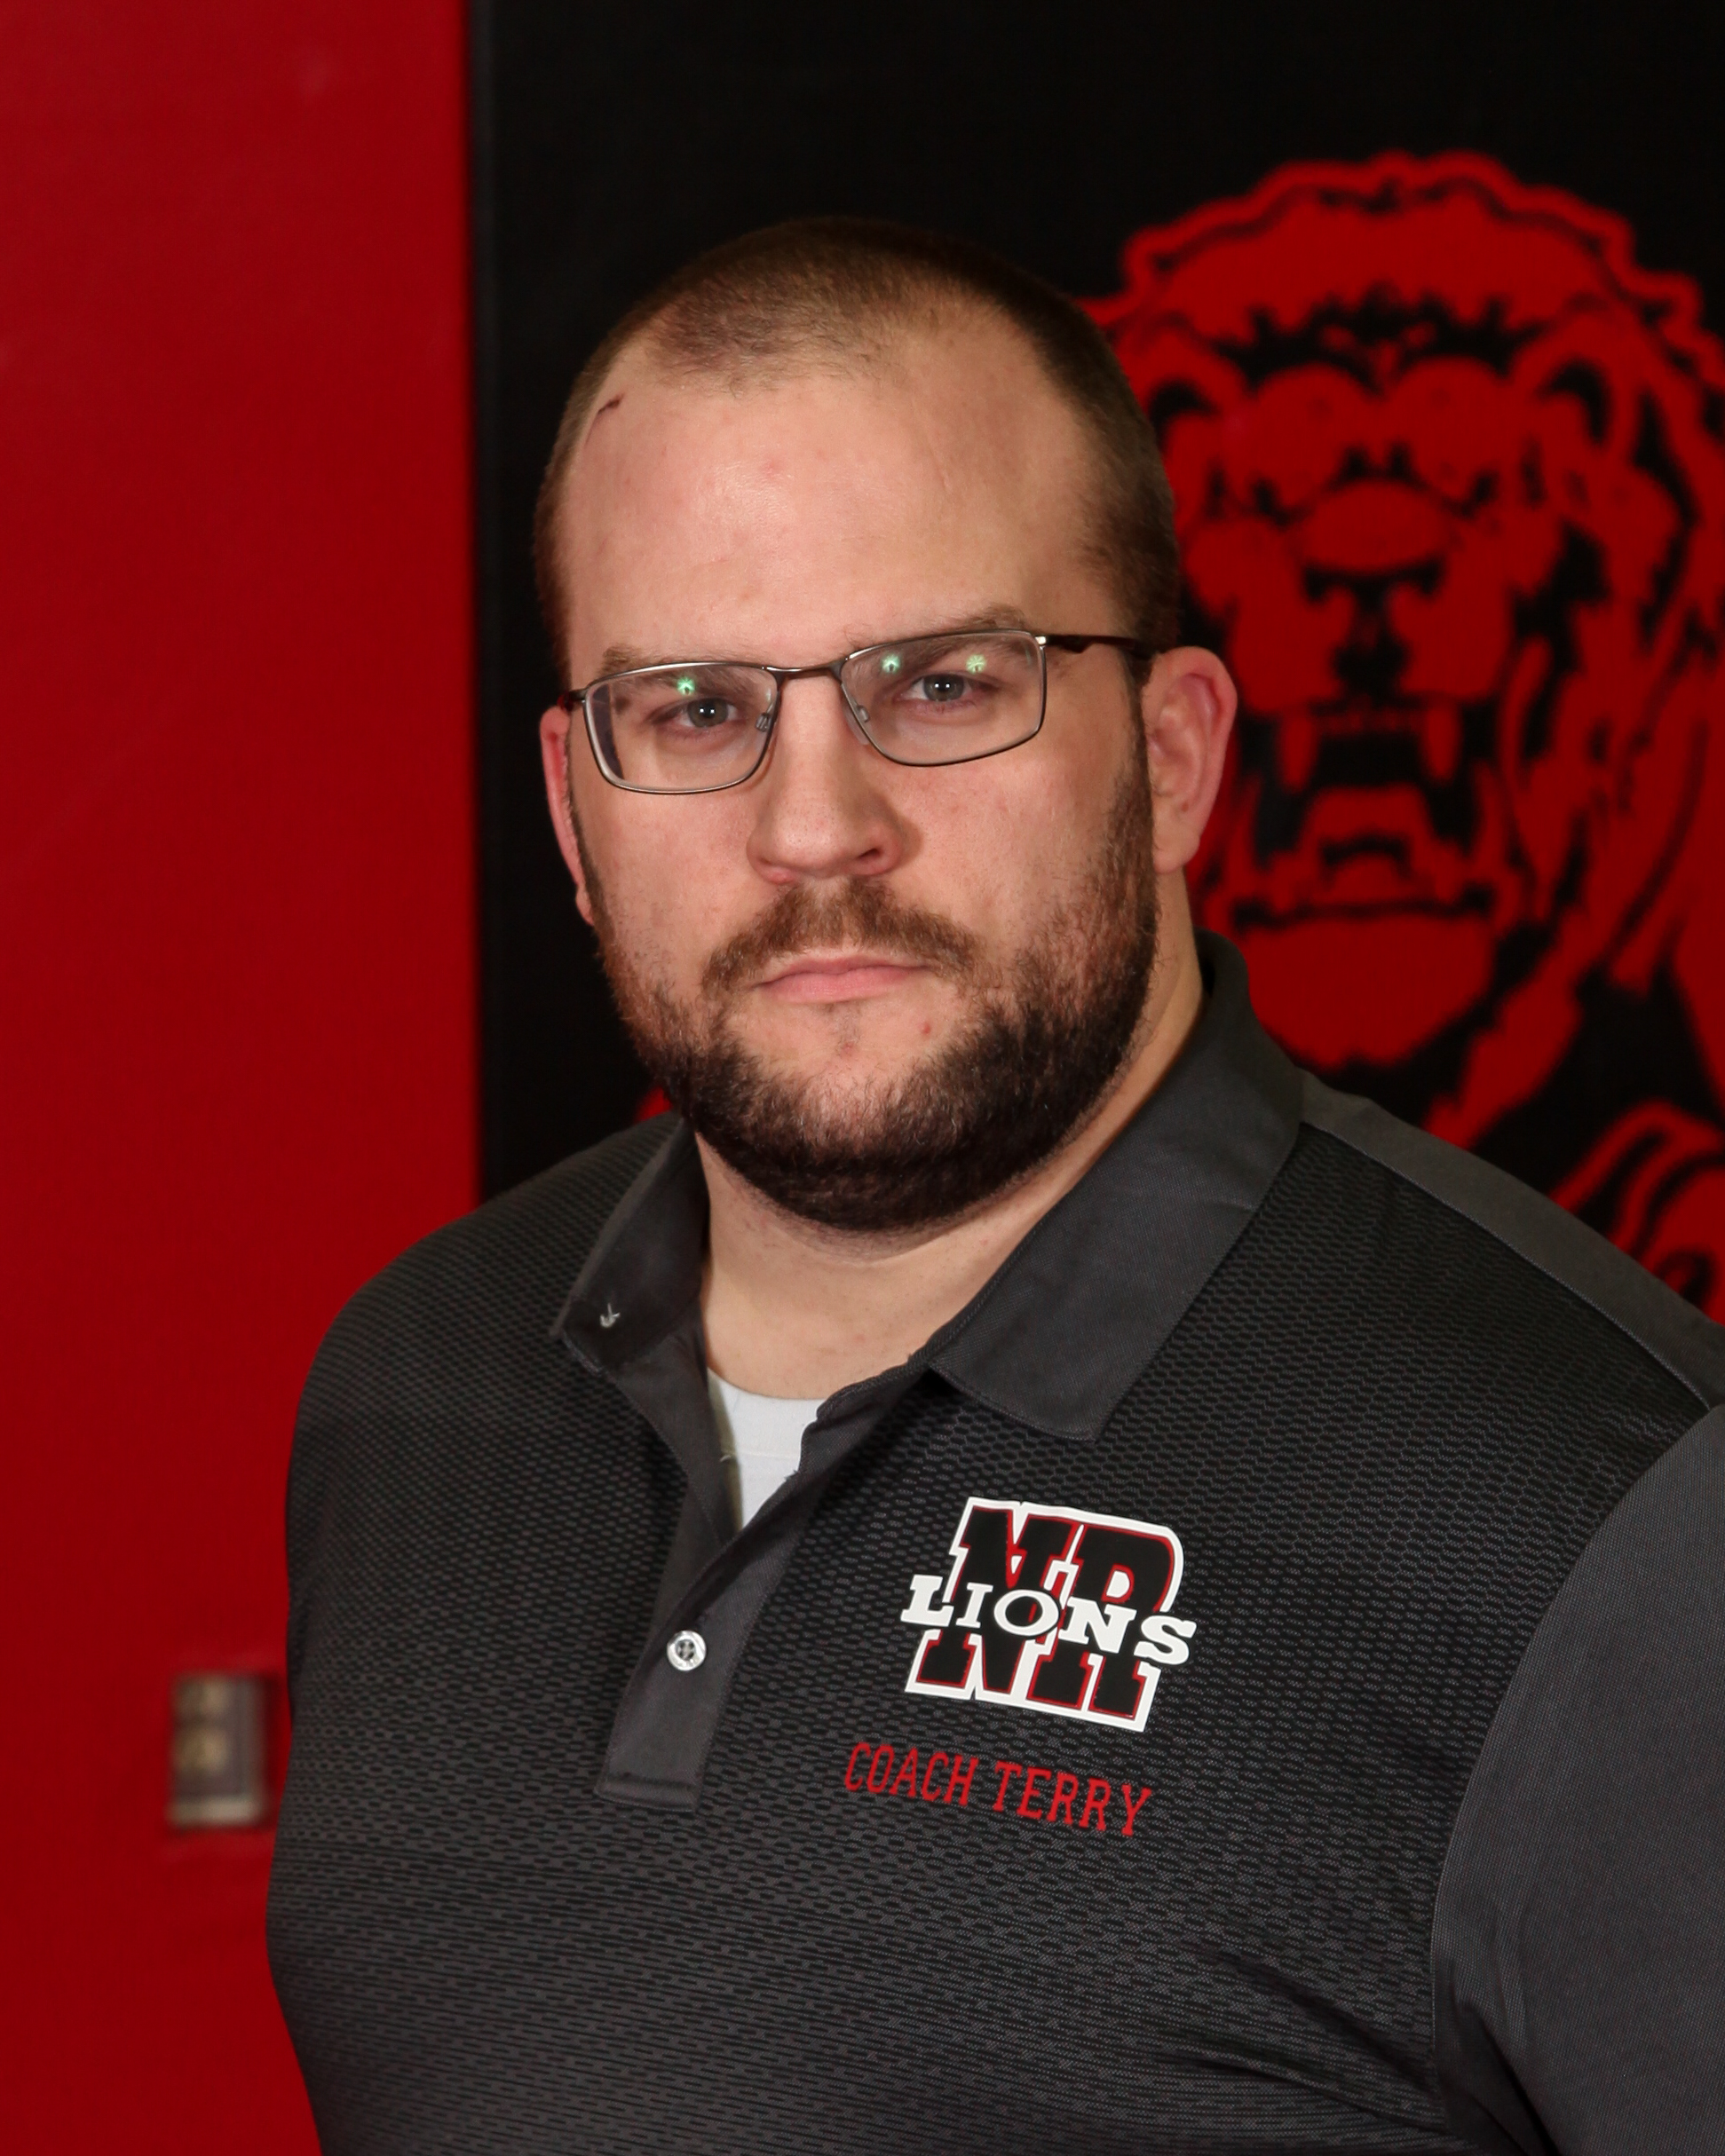 Wrestling coach Terry